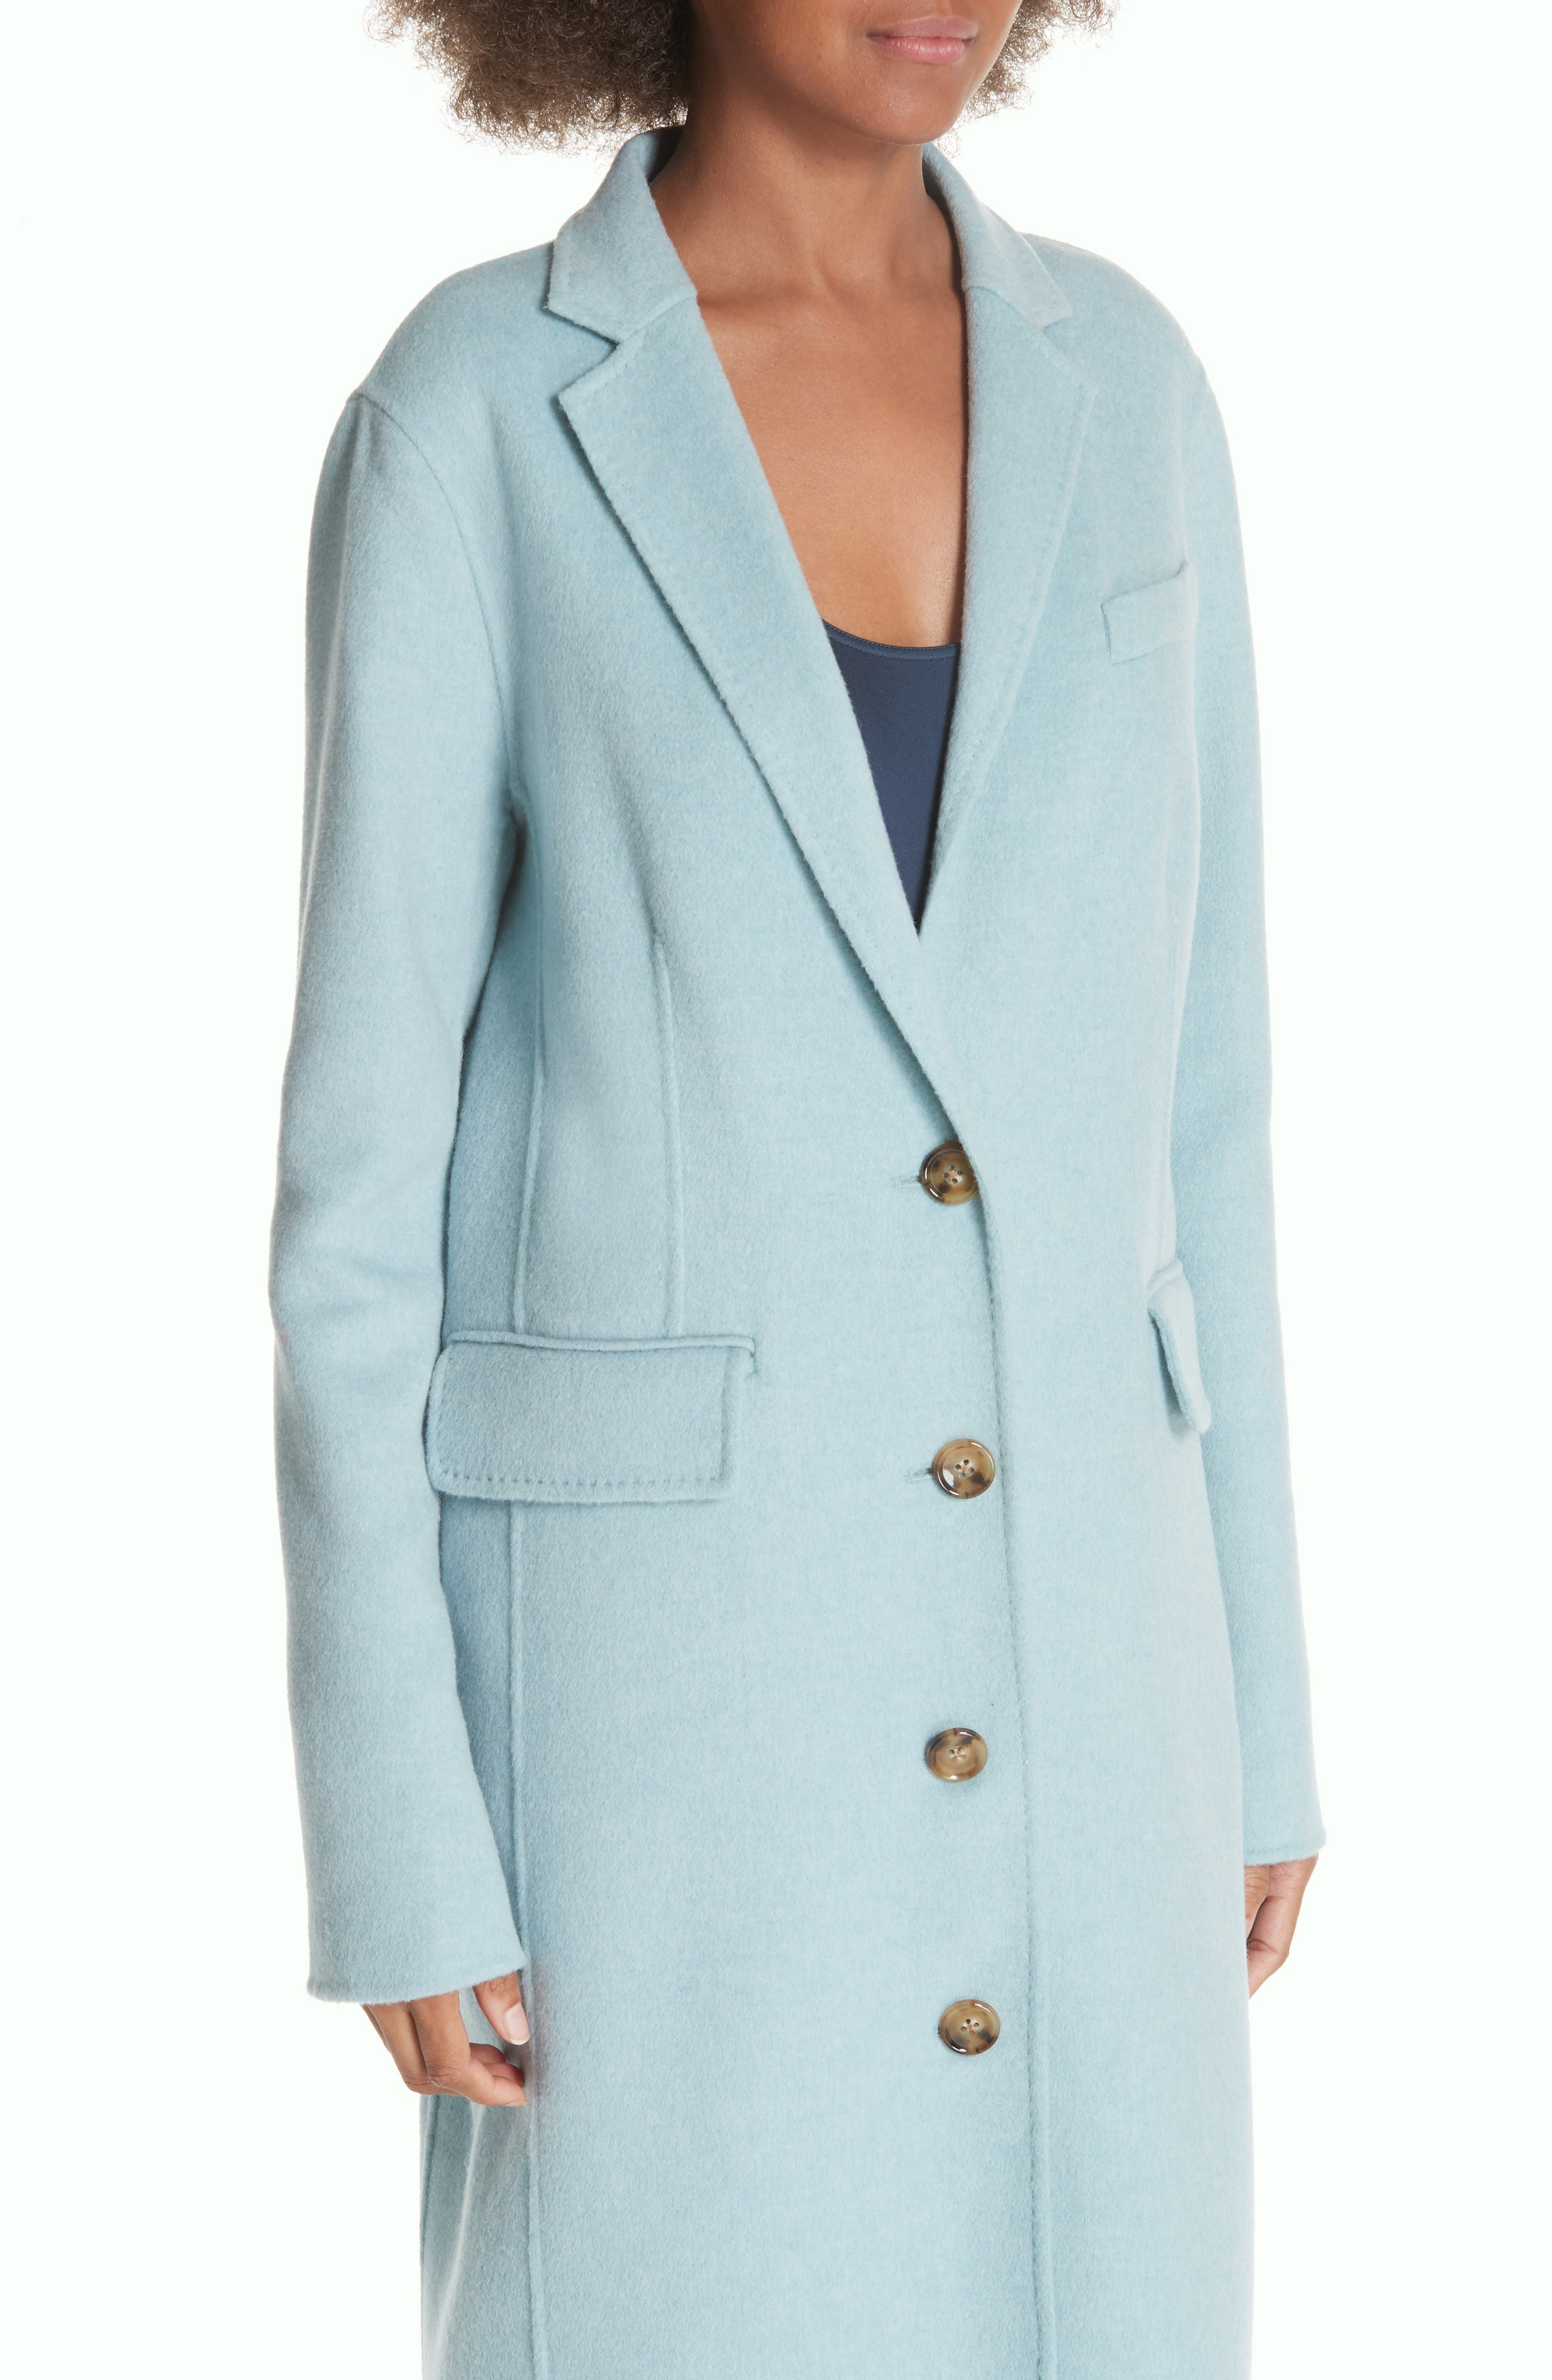 ELIZABETH AND JAMES,                             Russell Wool Blend Coat,                             Alternate thumbnail 4, color,                             400